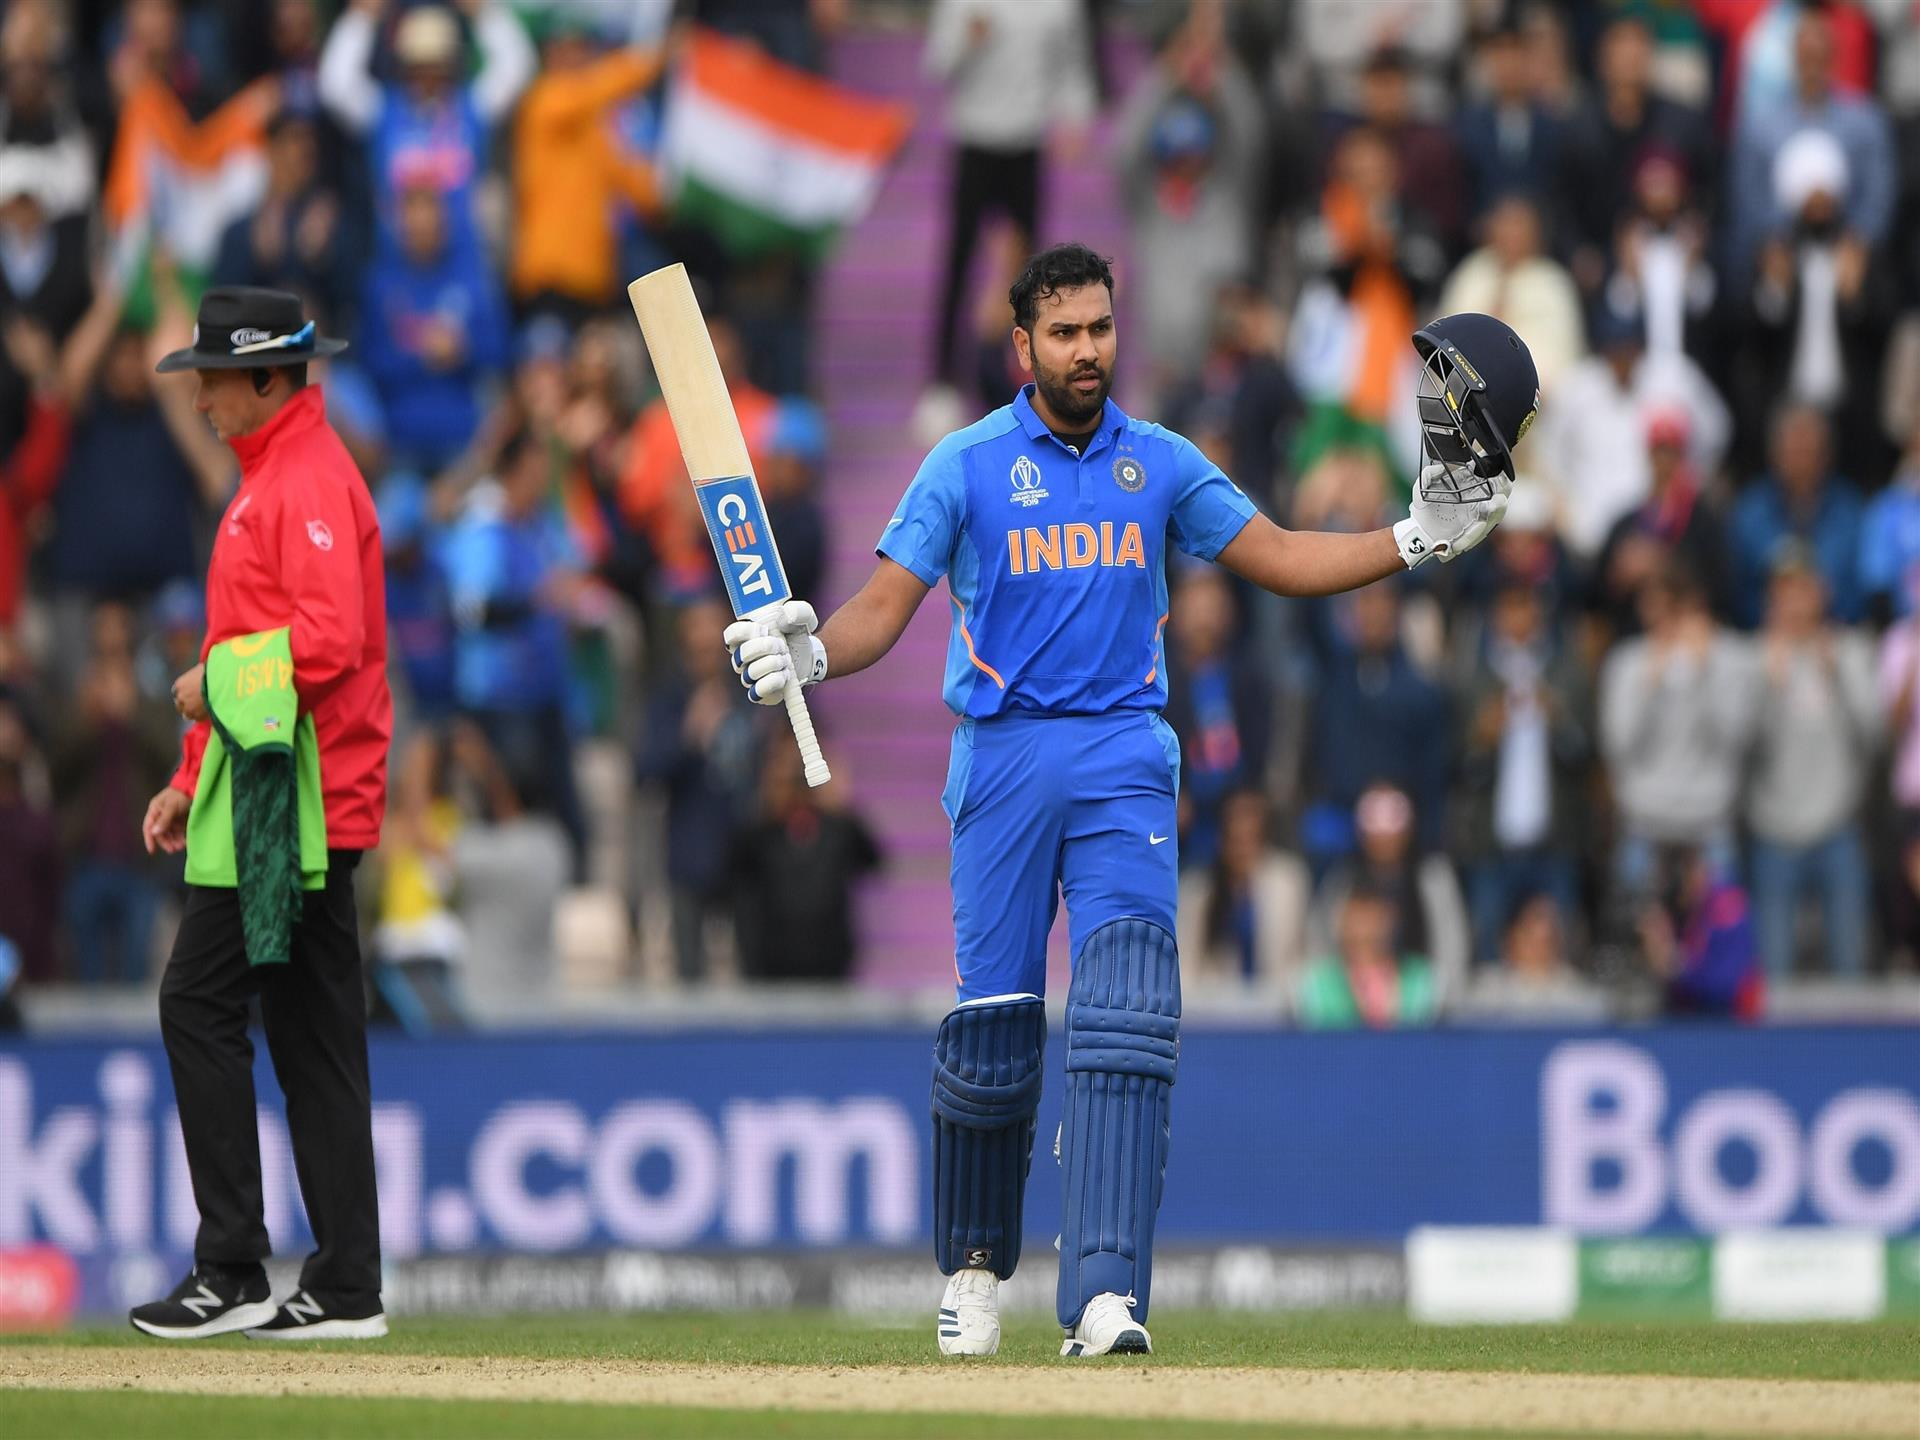 1920x1440 Rohit Sharma Indian Cricketer in Cricket World Cup 2019 4K Wallpaper